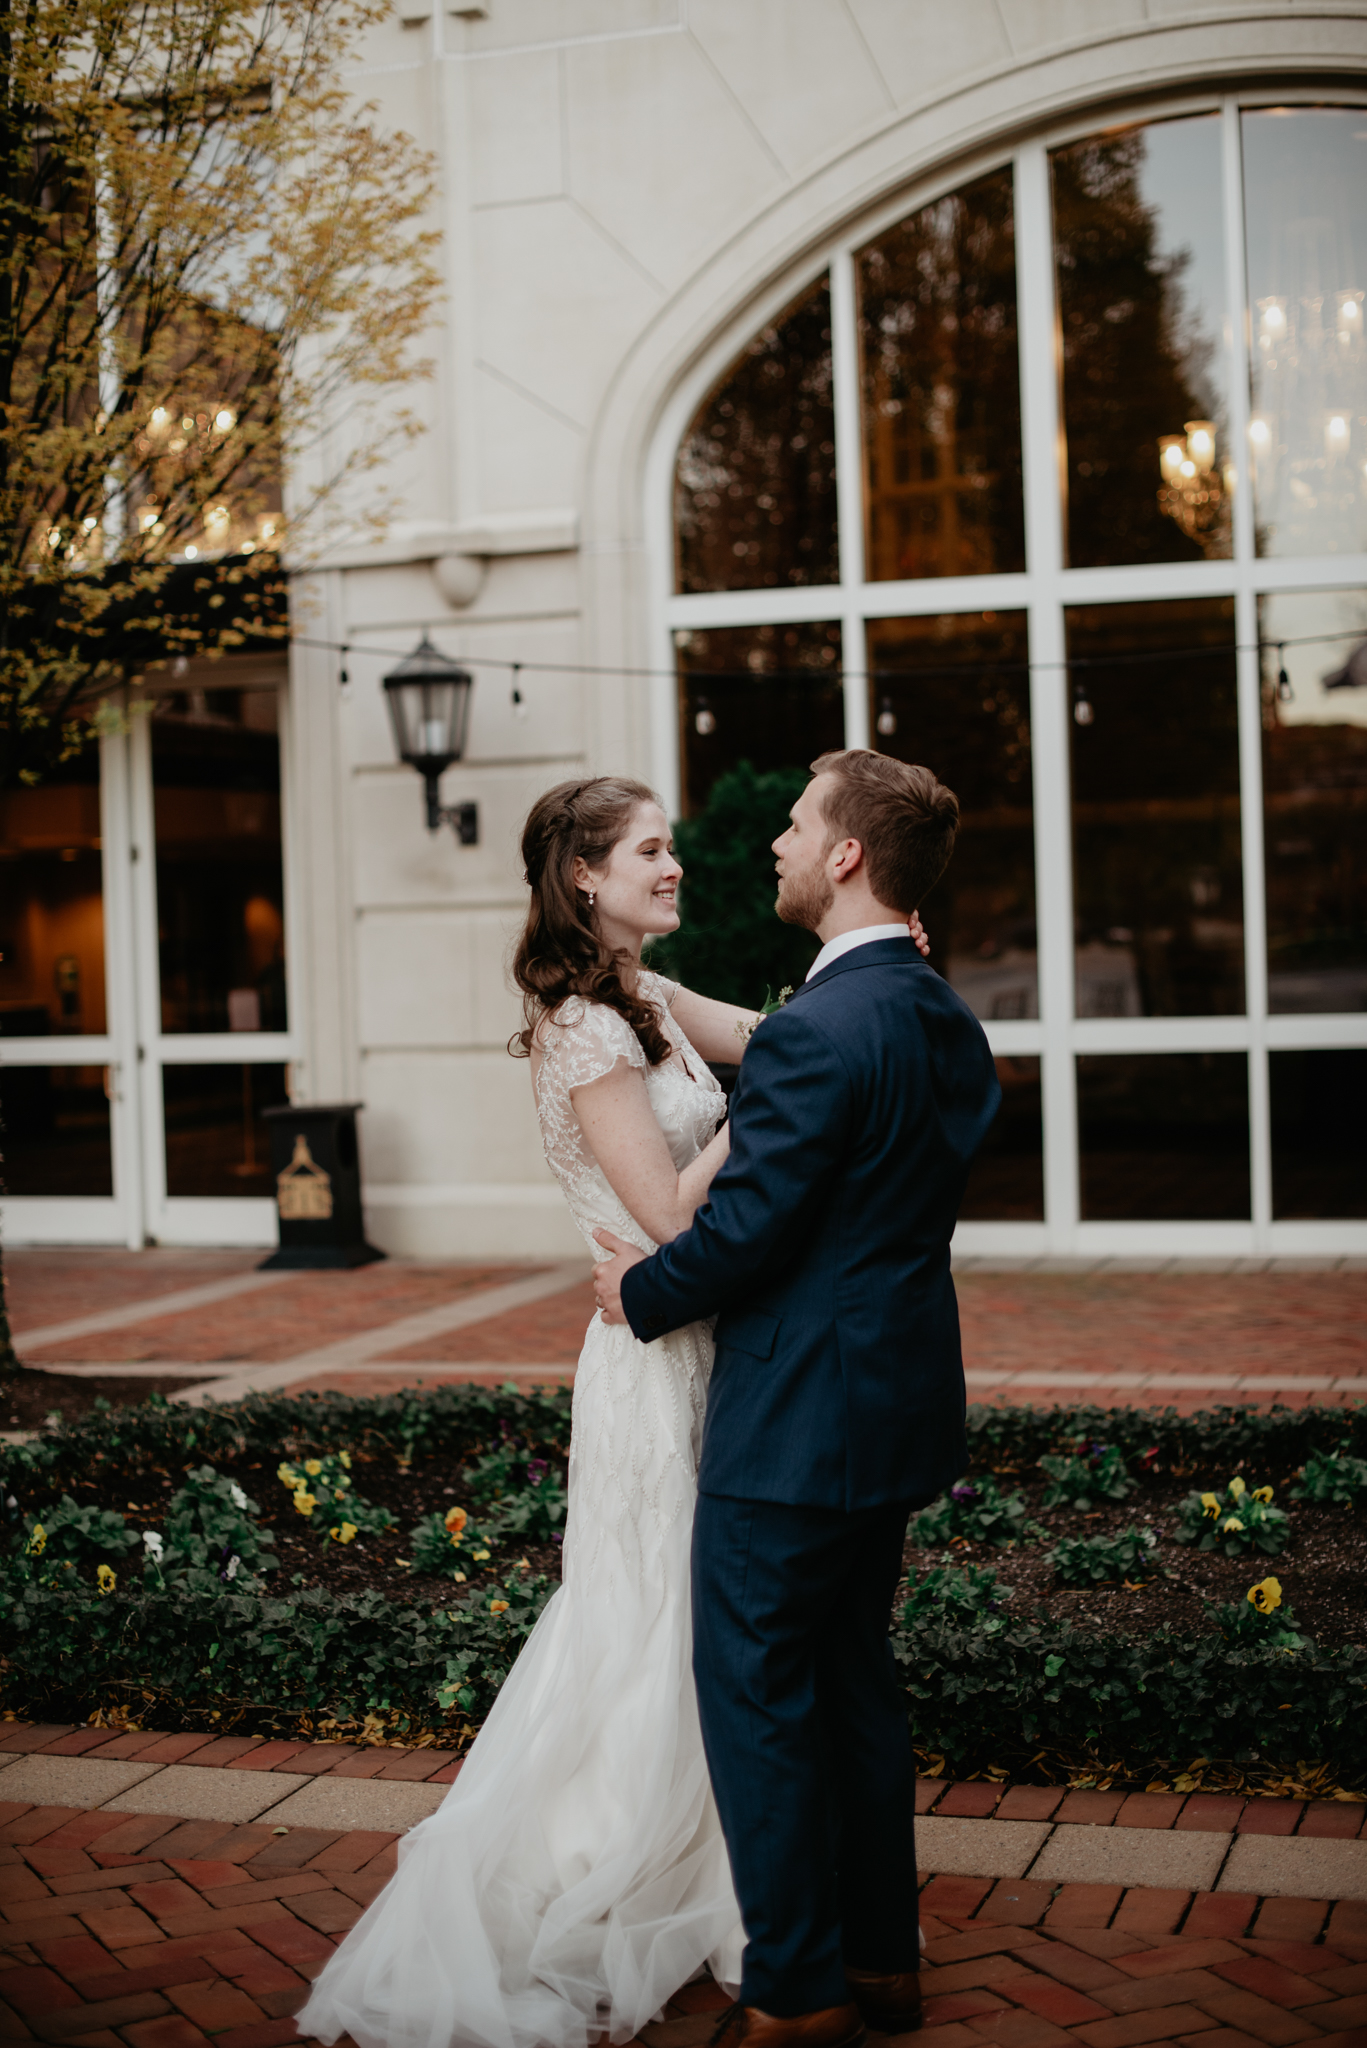 CLASSIC DOWNTOWN ROANOKE WEDDING